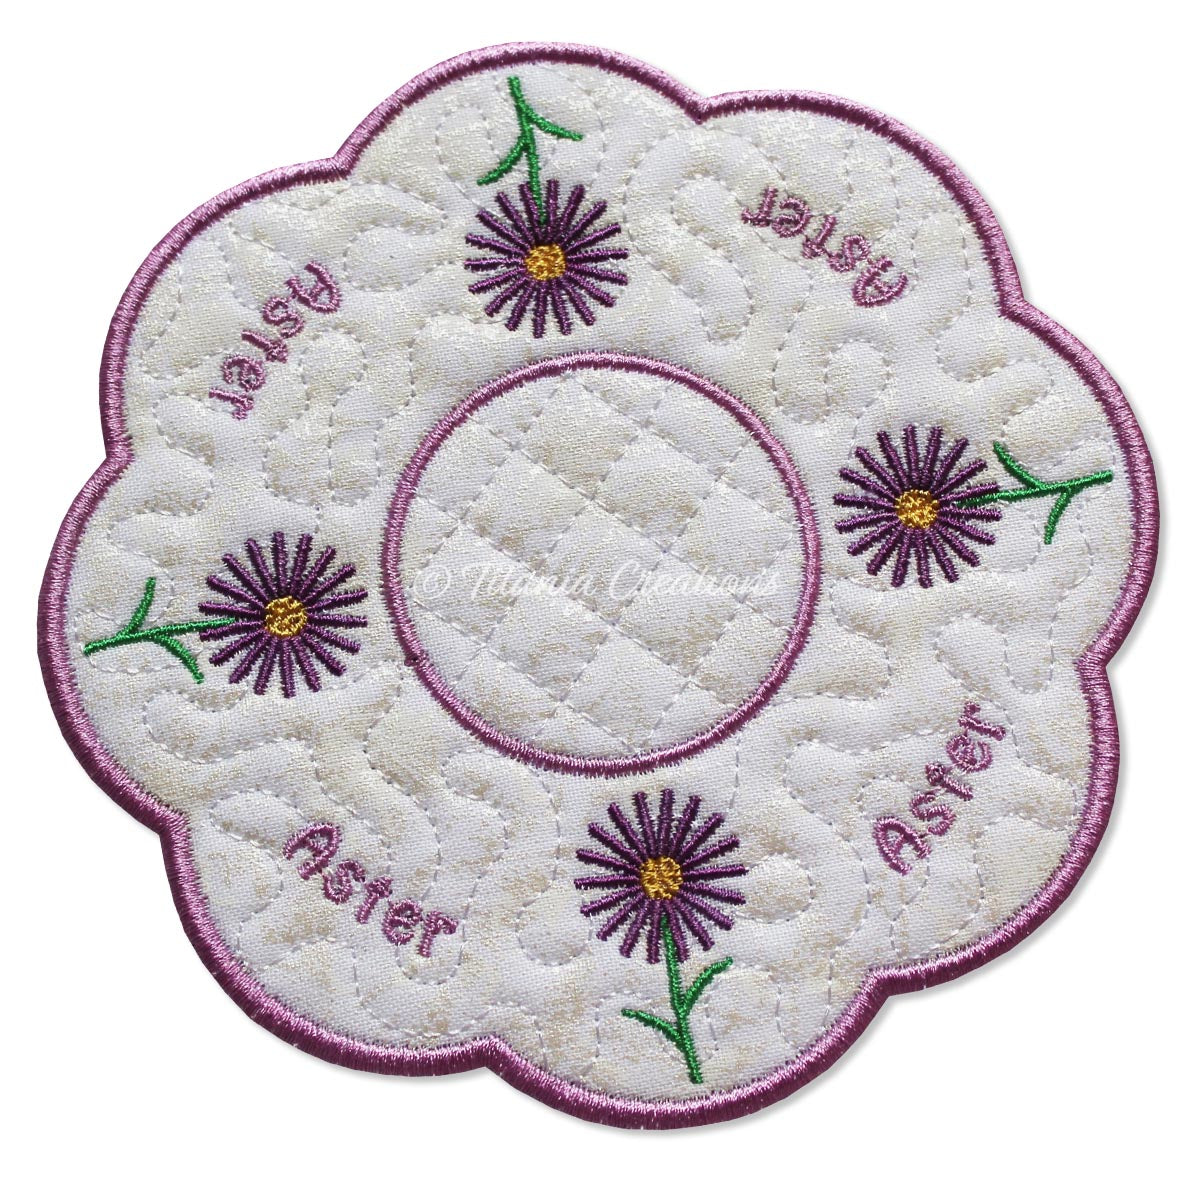 ITH Aster Flower for September Candle Mat 5x5 6x6 7x7 8x8